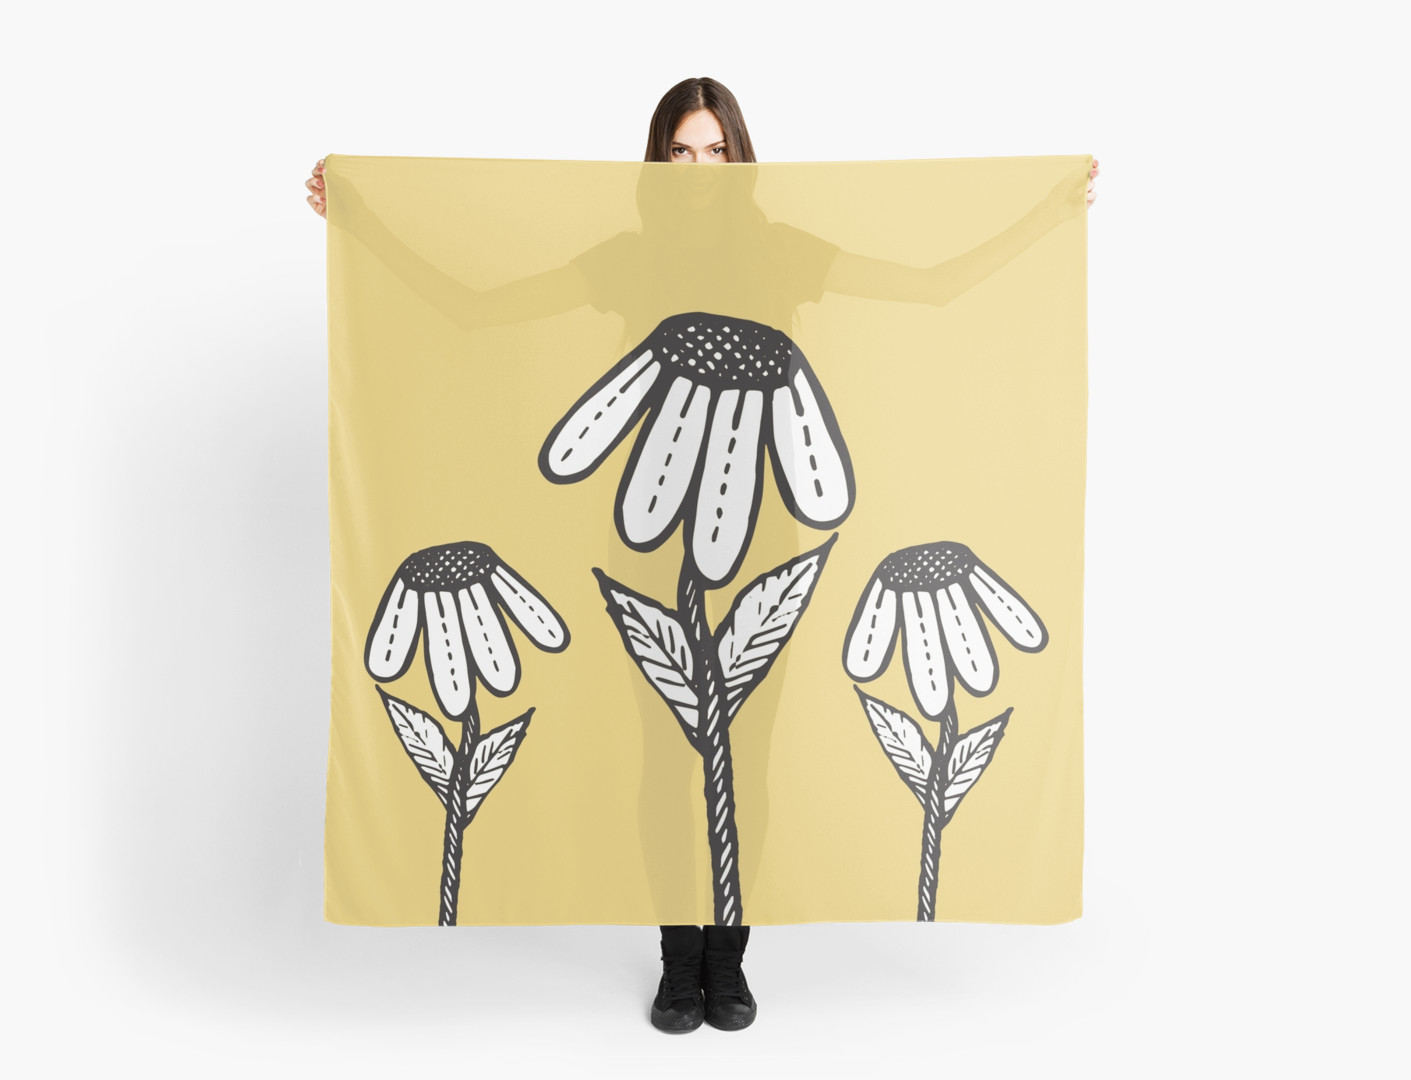 Drawn scarf sad Hand Drooping Blkstrawberry Flowers Scarves